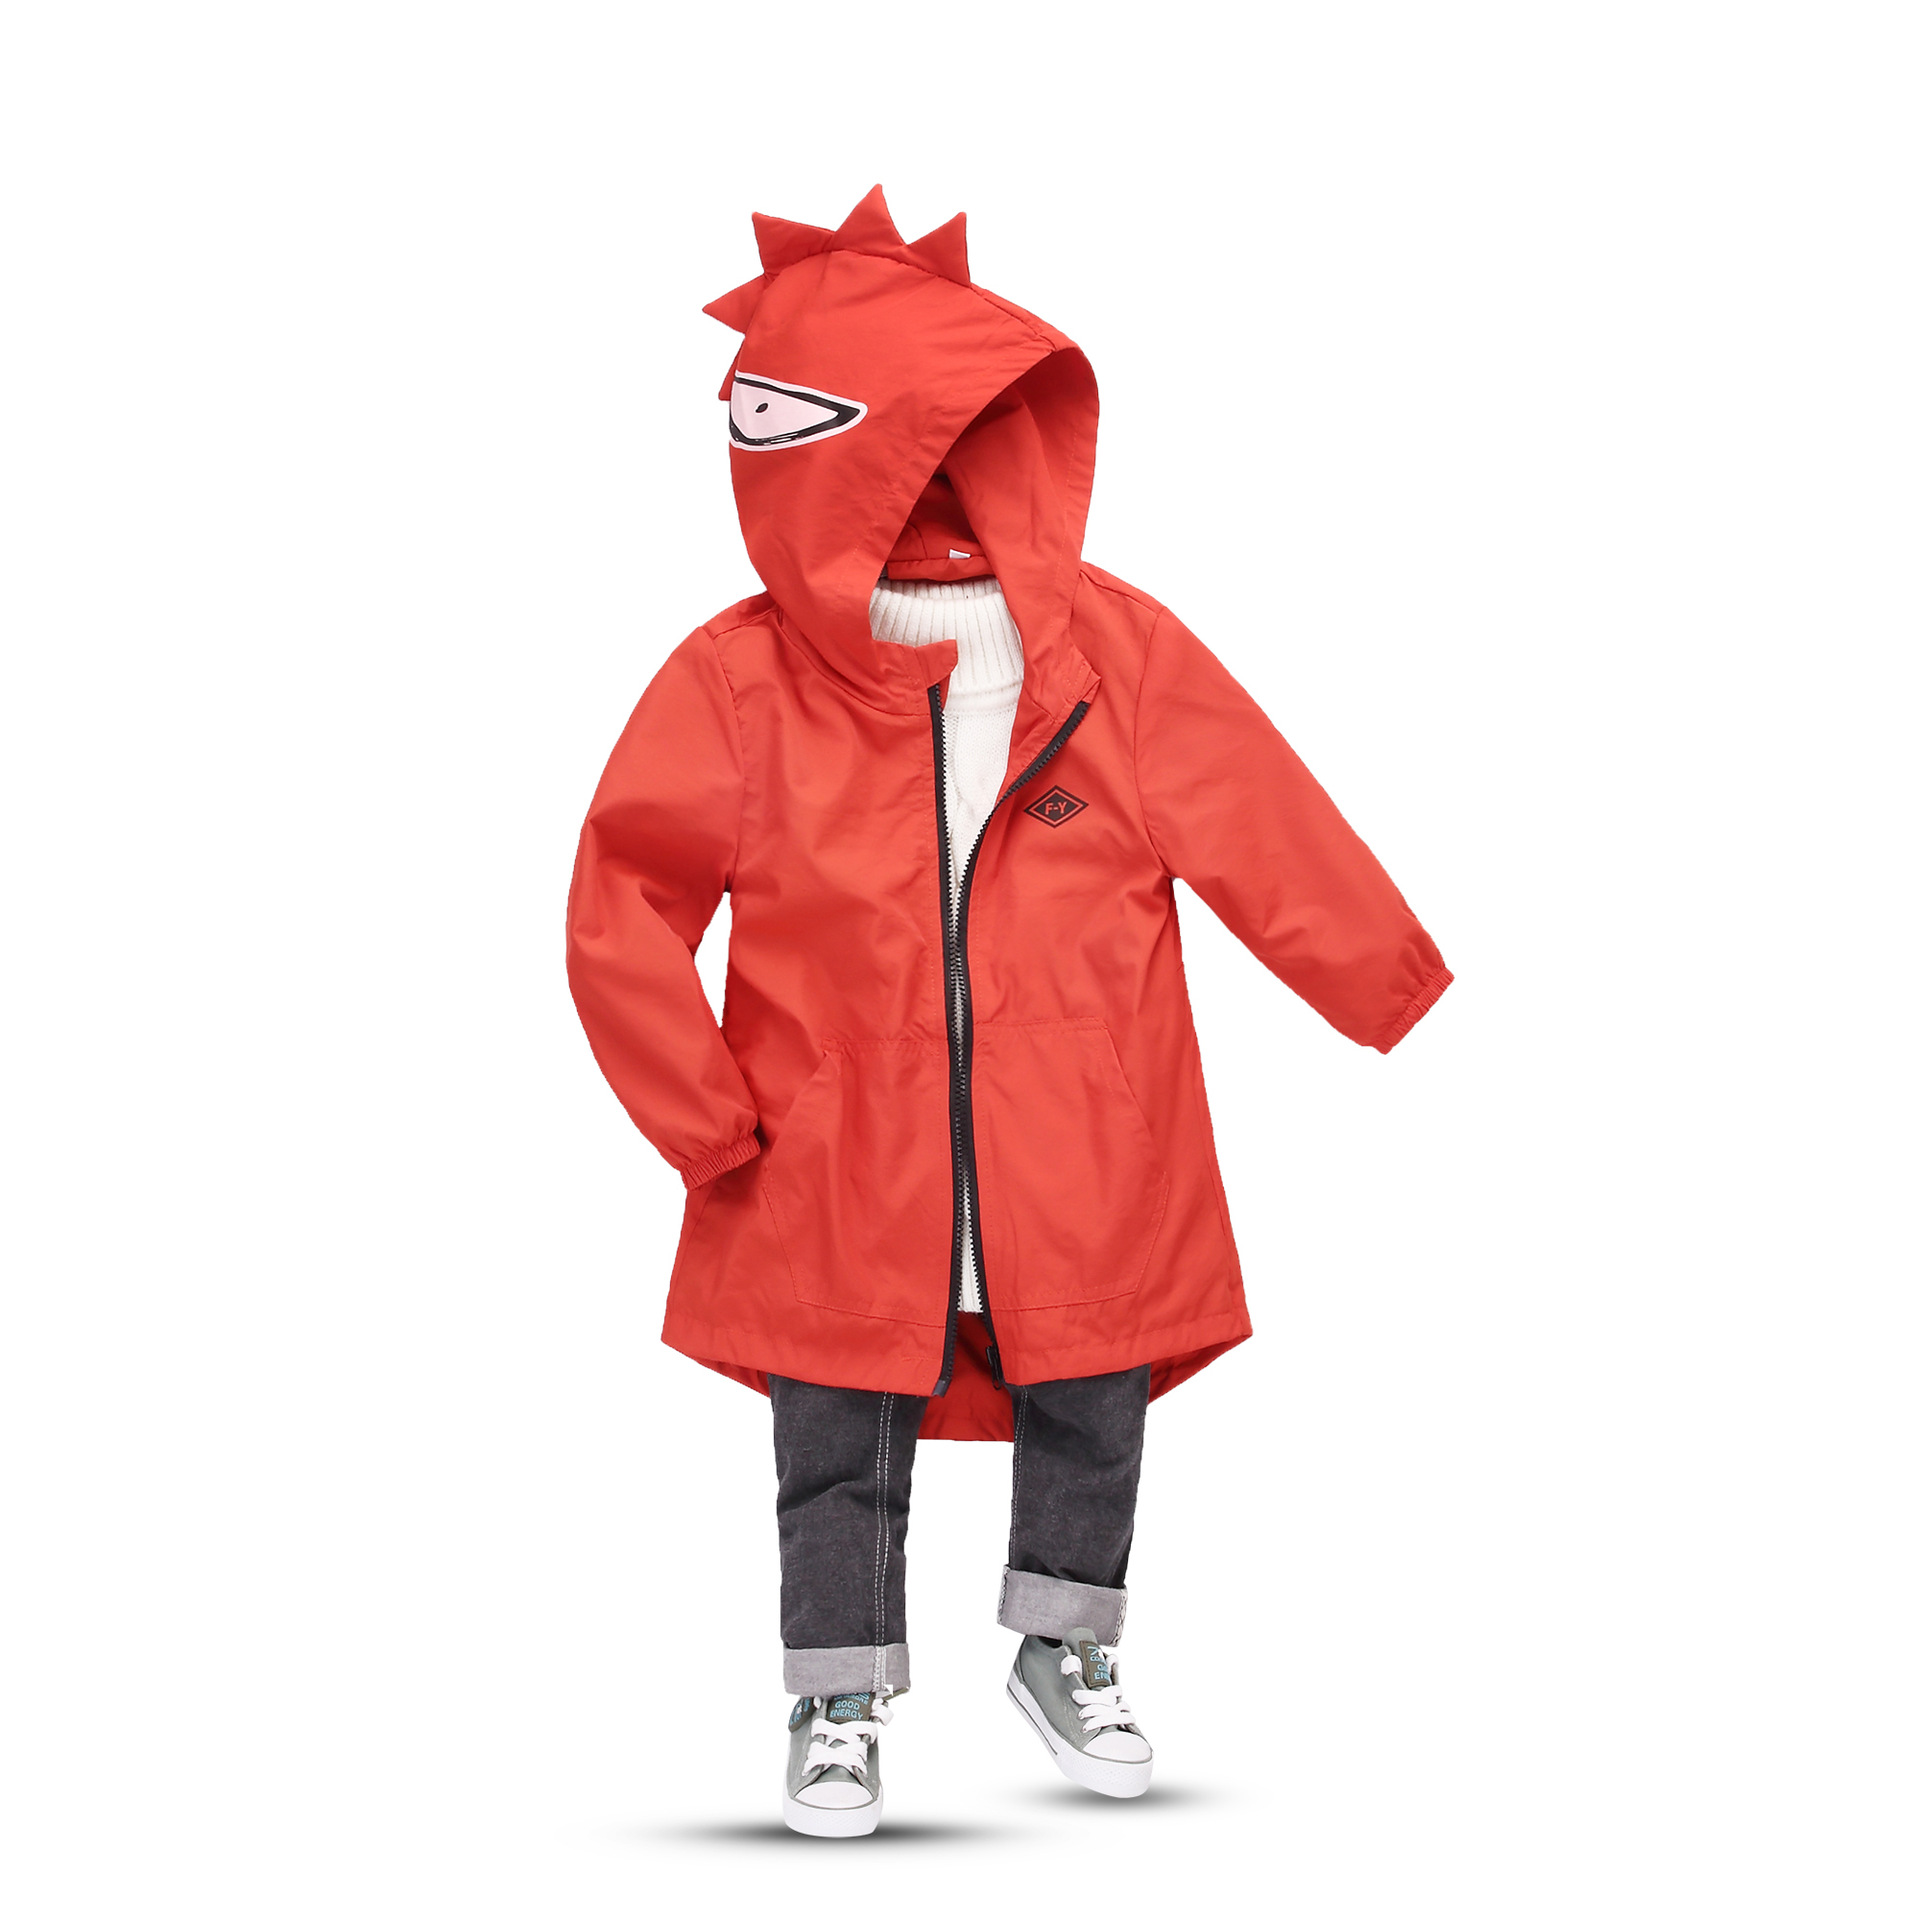 Kids Coat Windbreaker Spring Water-Proof Autumn Boys Cartoon And Monster Ages Size-2-8